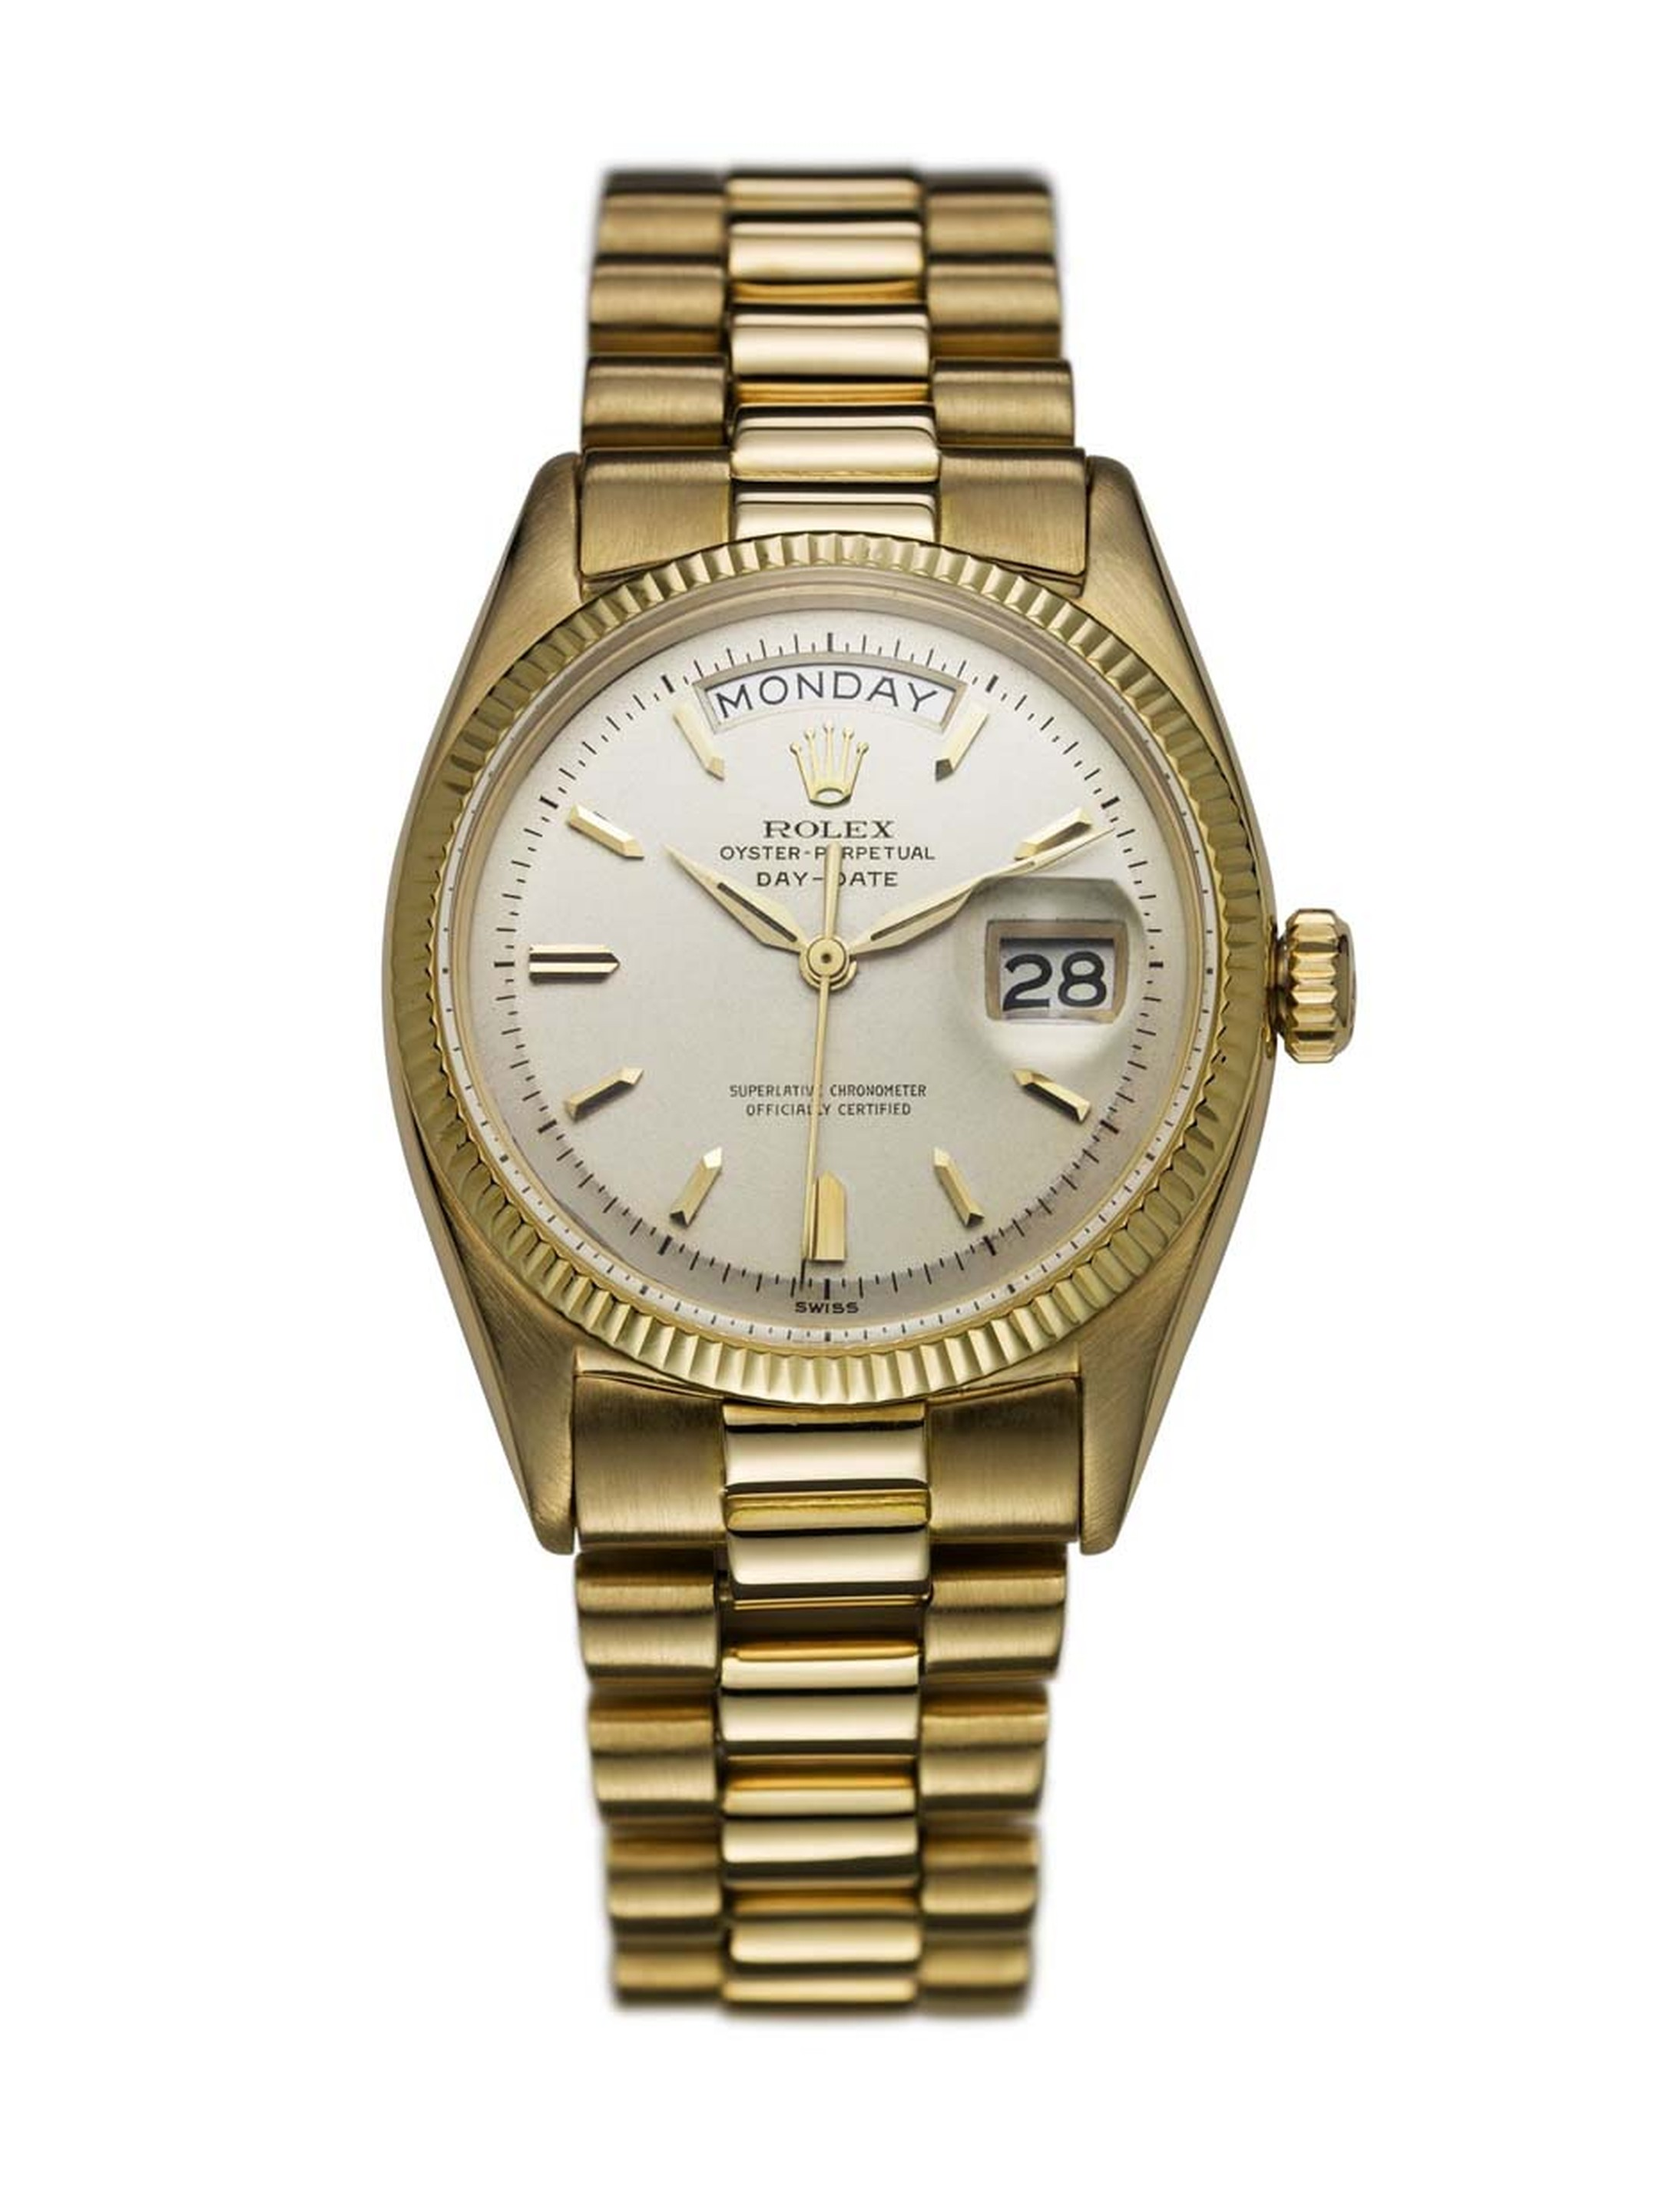 The Rolex Day-Date watch from 1956 was the first watch to display the date and the day of the week spelt out in full in a window at the top of the dial.